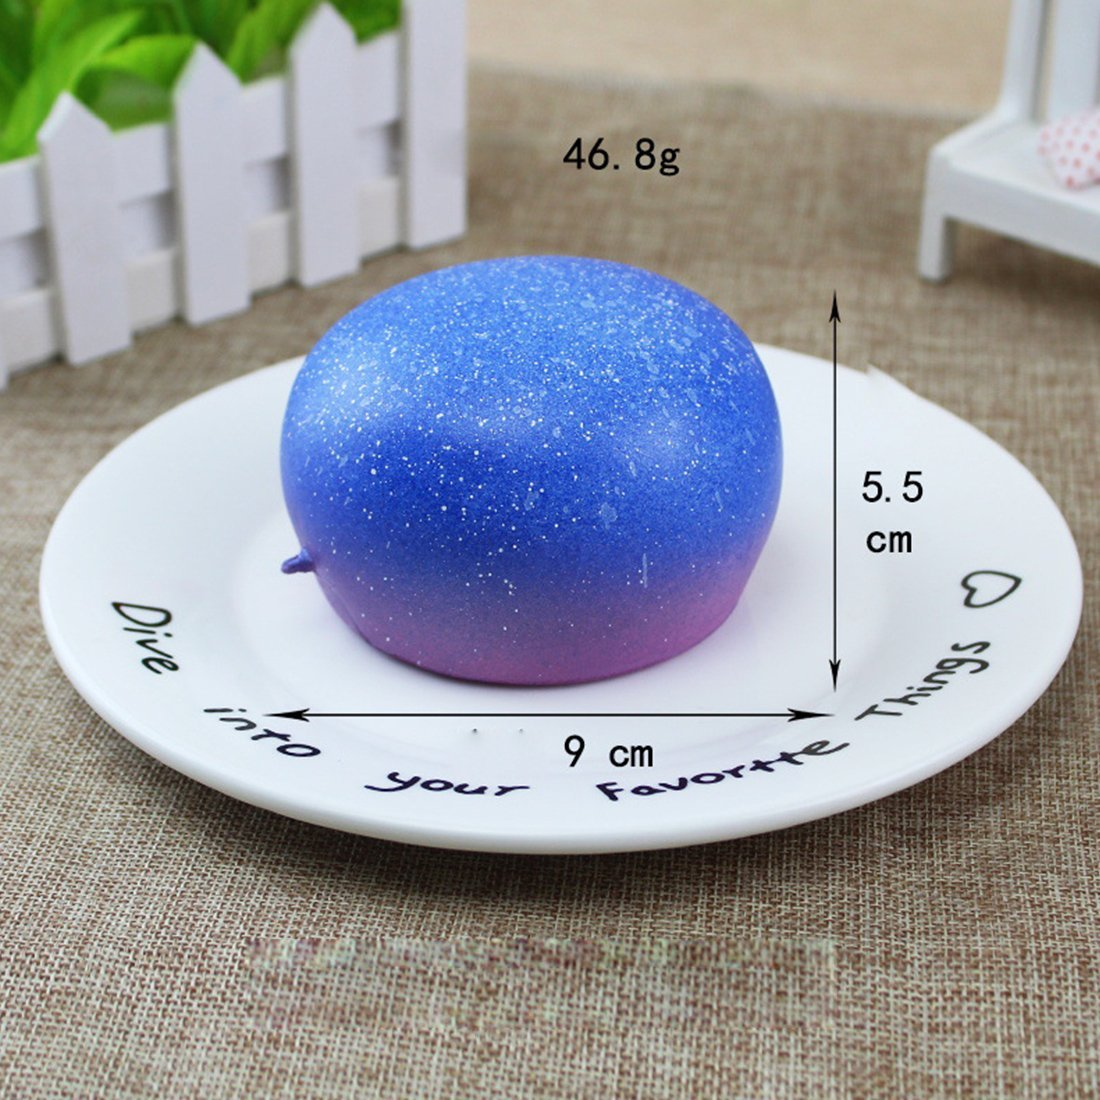 Decompression Toys, Zubita Simulation of Food Decompression Squeeze Toys Steamed?Bun with Starry Sky Charms Slow Rebound Stress Relief Toys for Kids and Adults